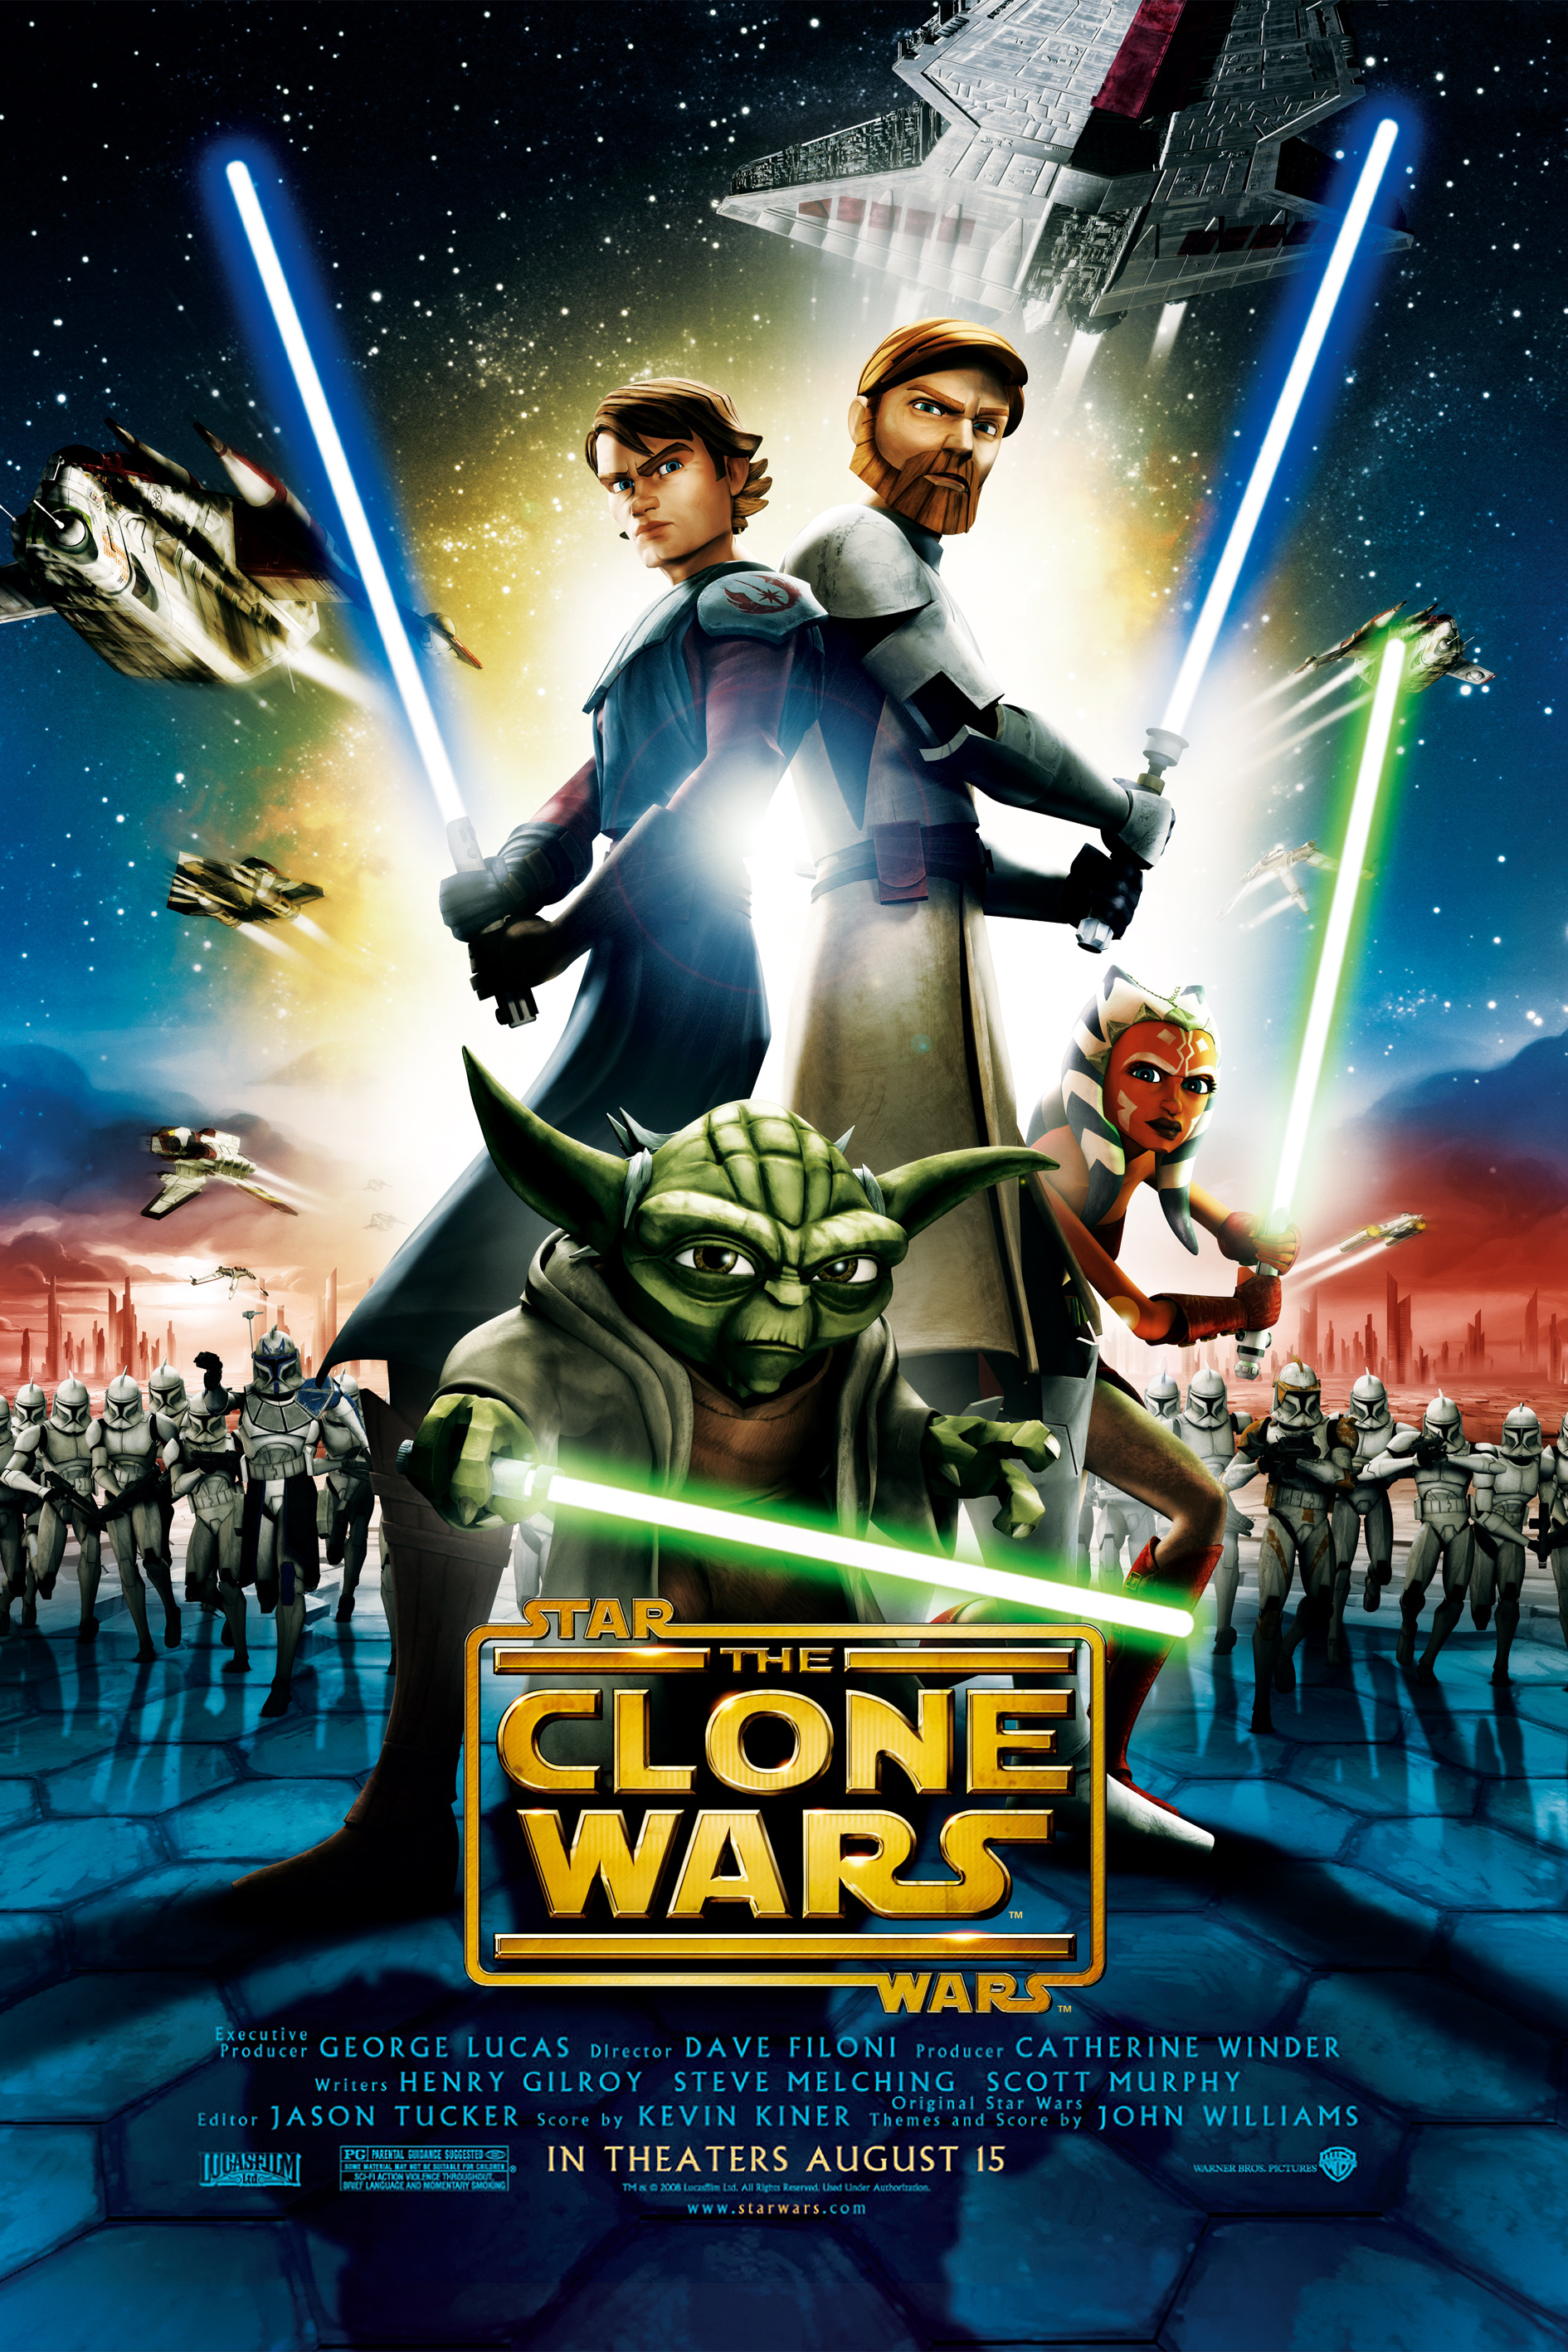 Star Wars The Clone Wars Dvd Cover Star Wars The Clone Wars